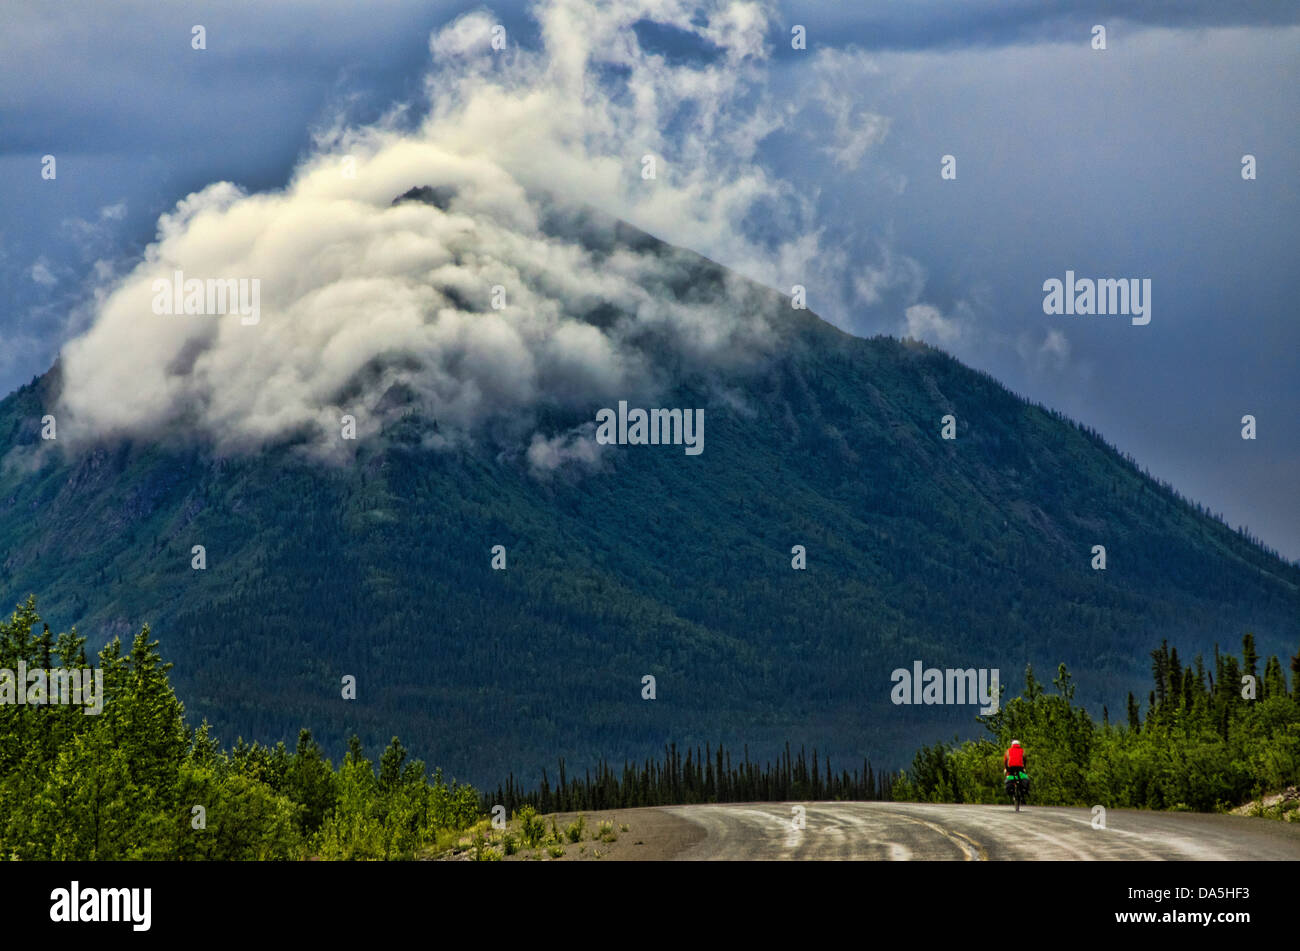 bicyclist, Alaska, highway, mountains, kluane, national, park, road, USA, United States, America - Stock Image